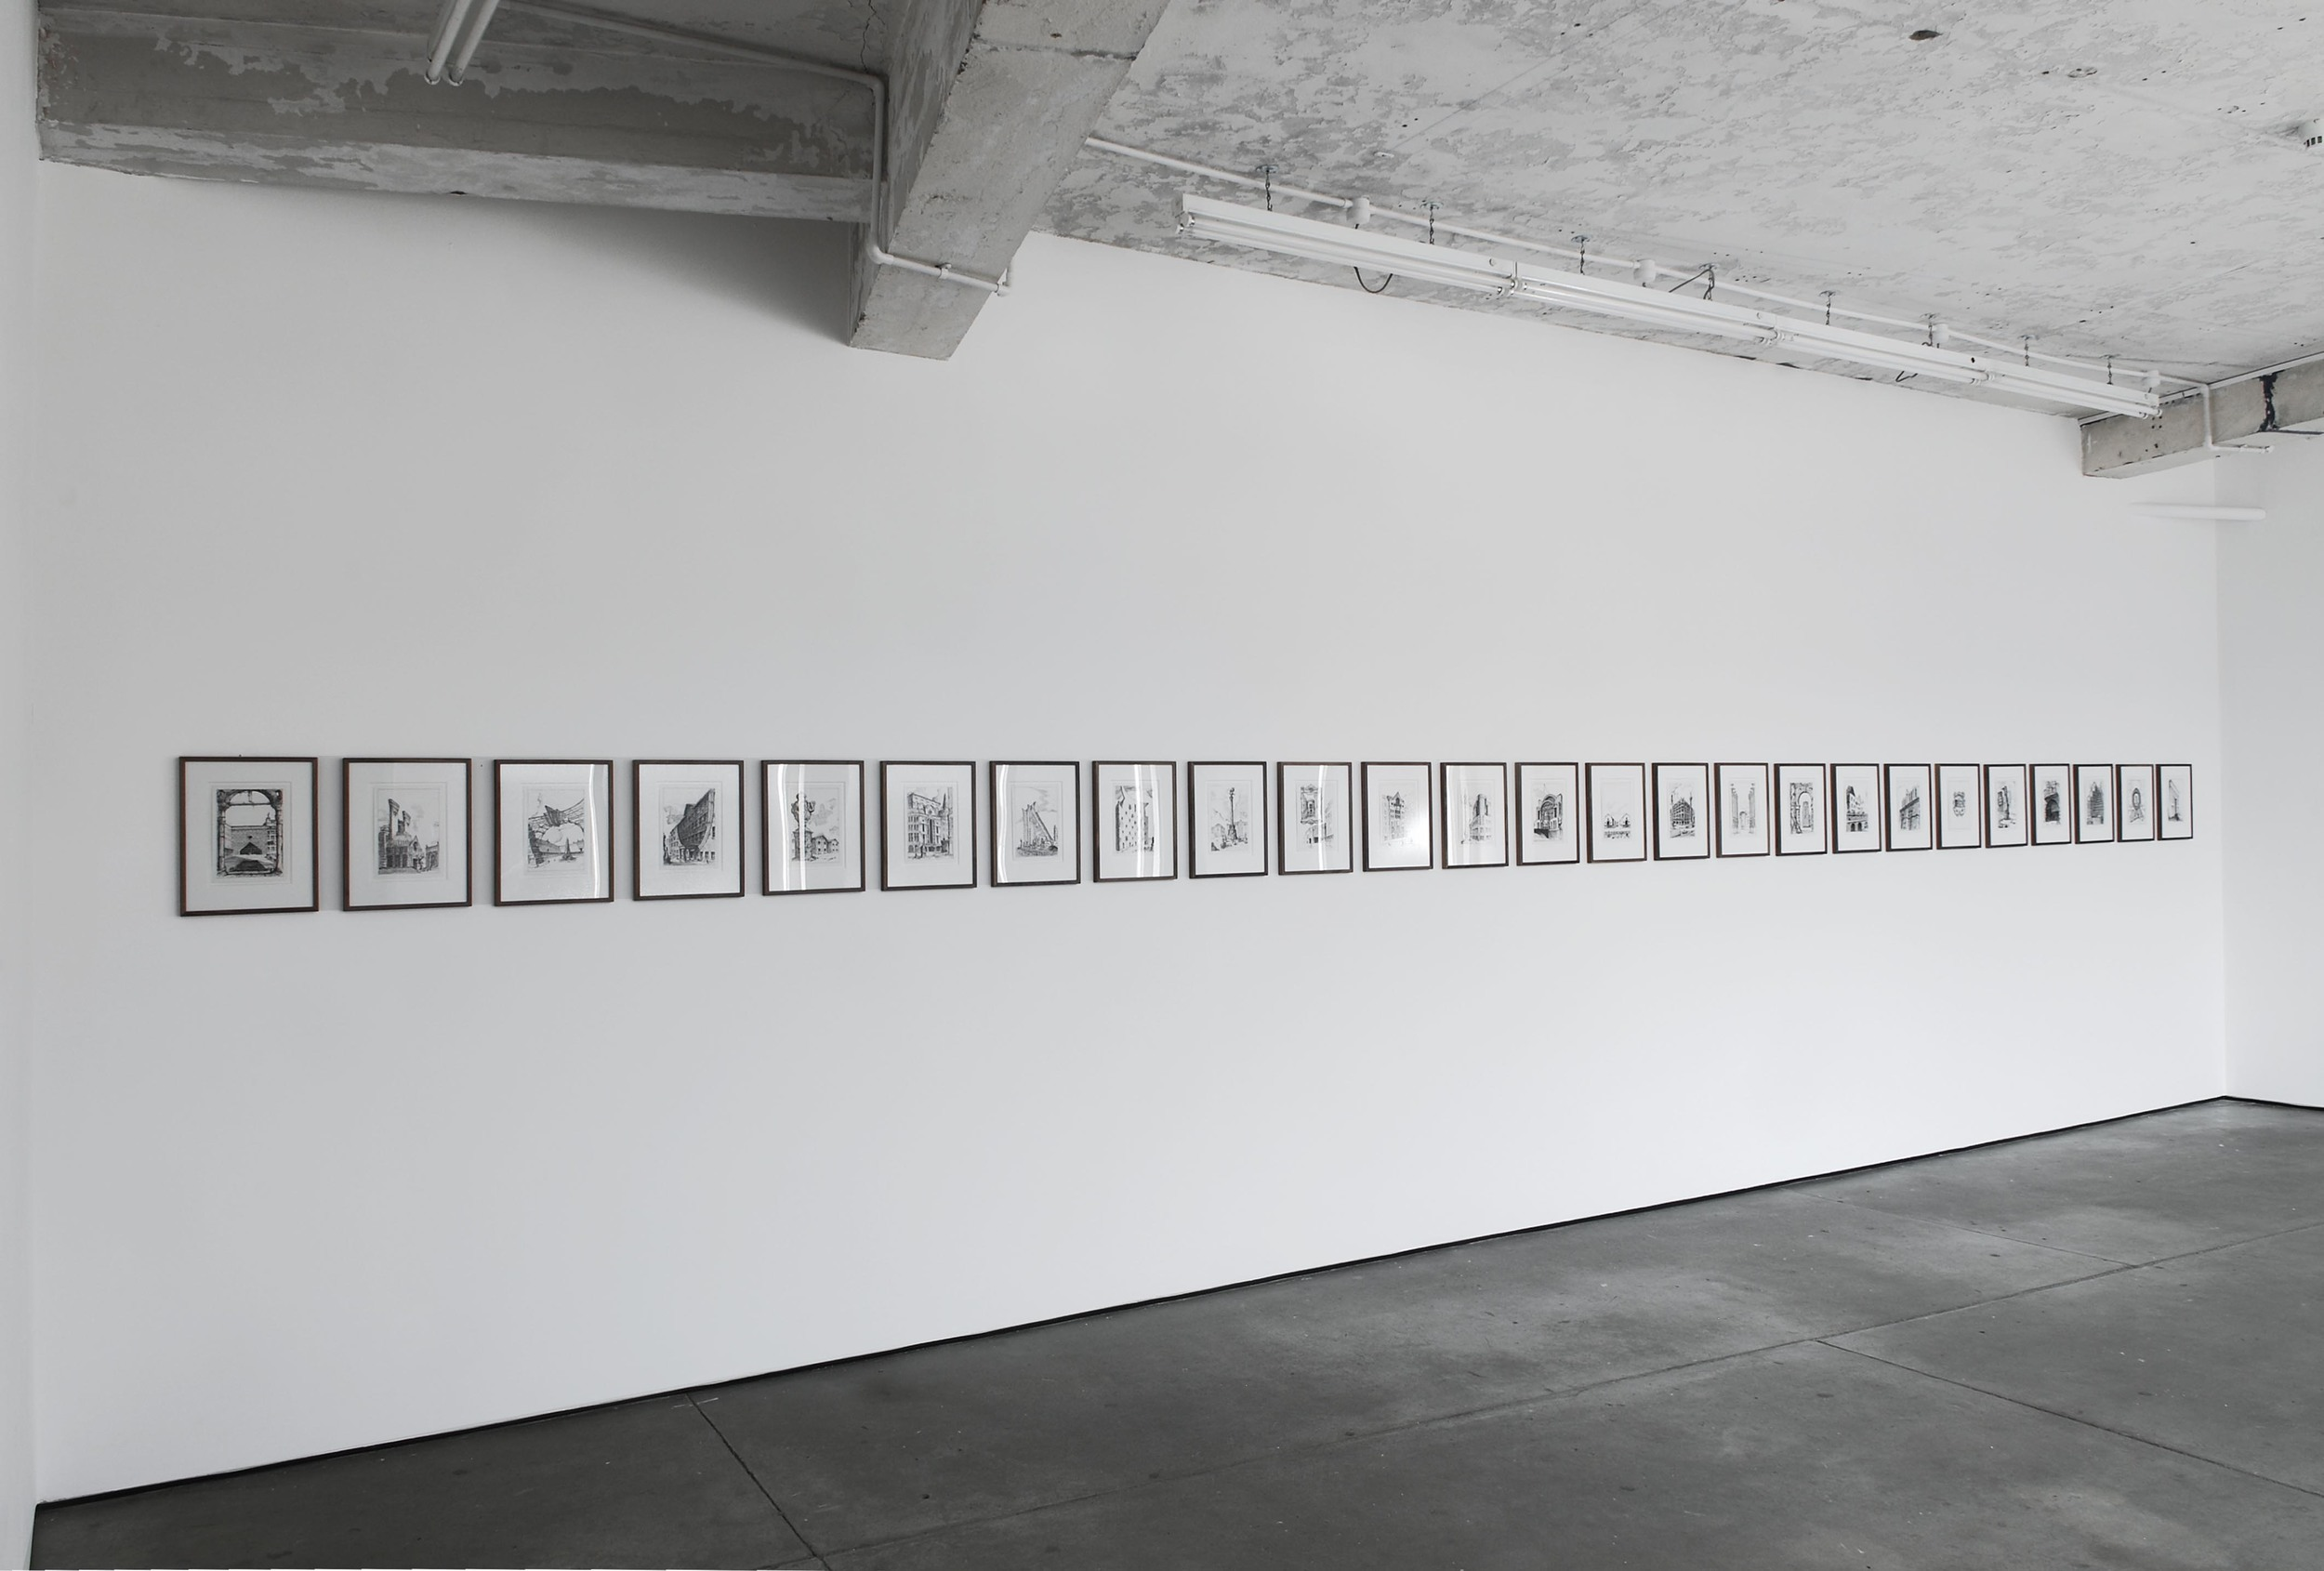 Pablo Bronstein Postmodern Architecture in London 2007 ink on paper, framed 25 parts, each part 37.5 x 30.5 cm framed